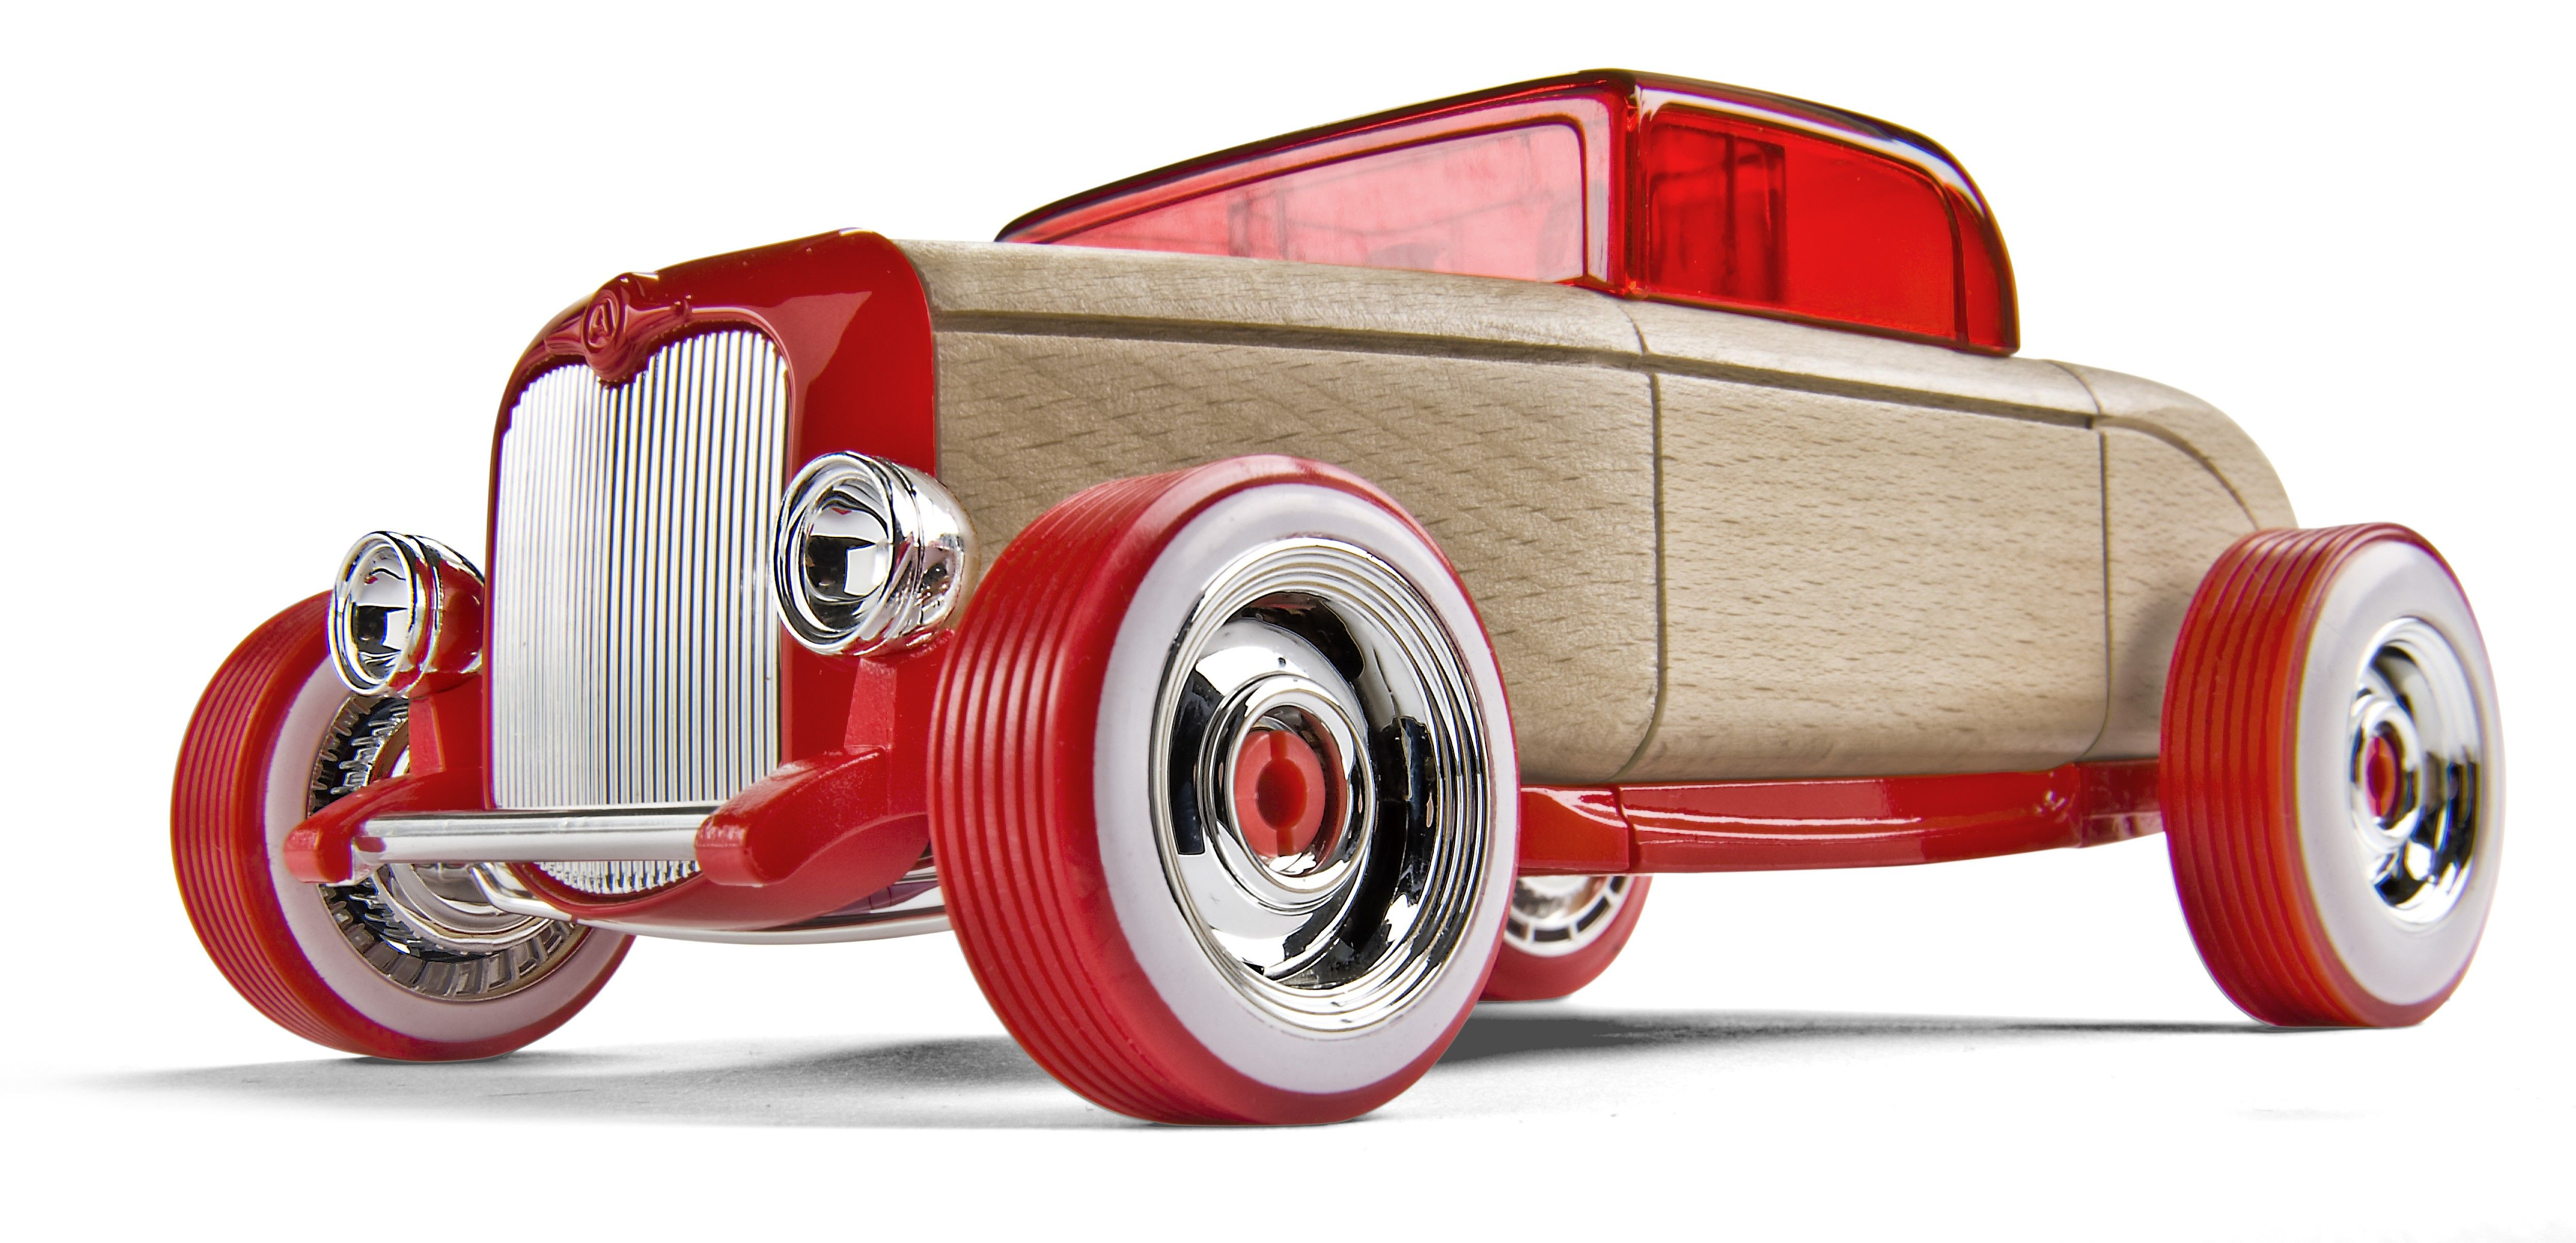 Hot Rod HR1 Car building toy parts of multiple models can be